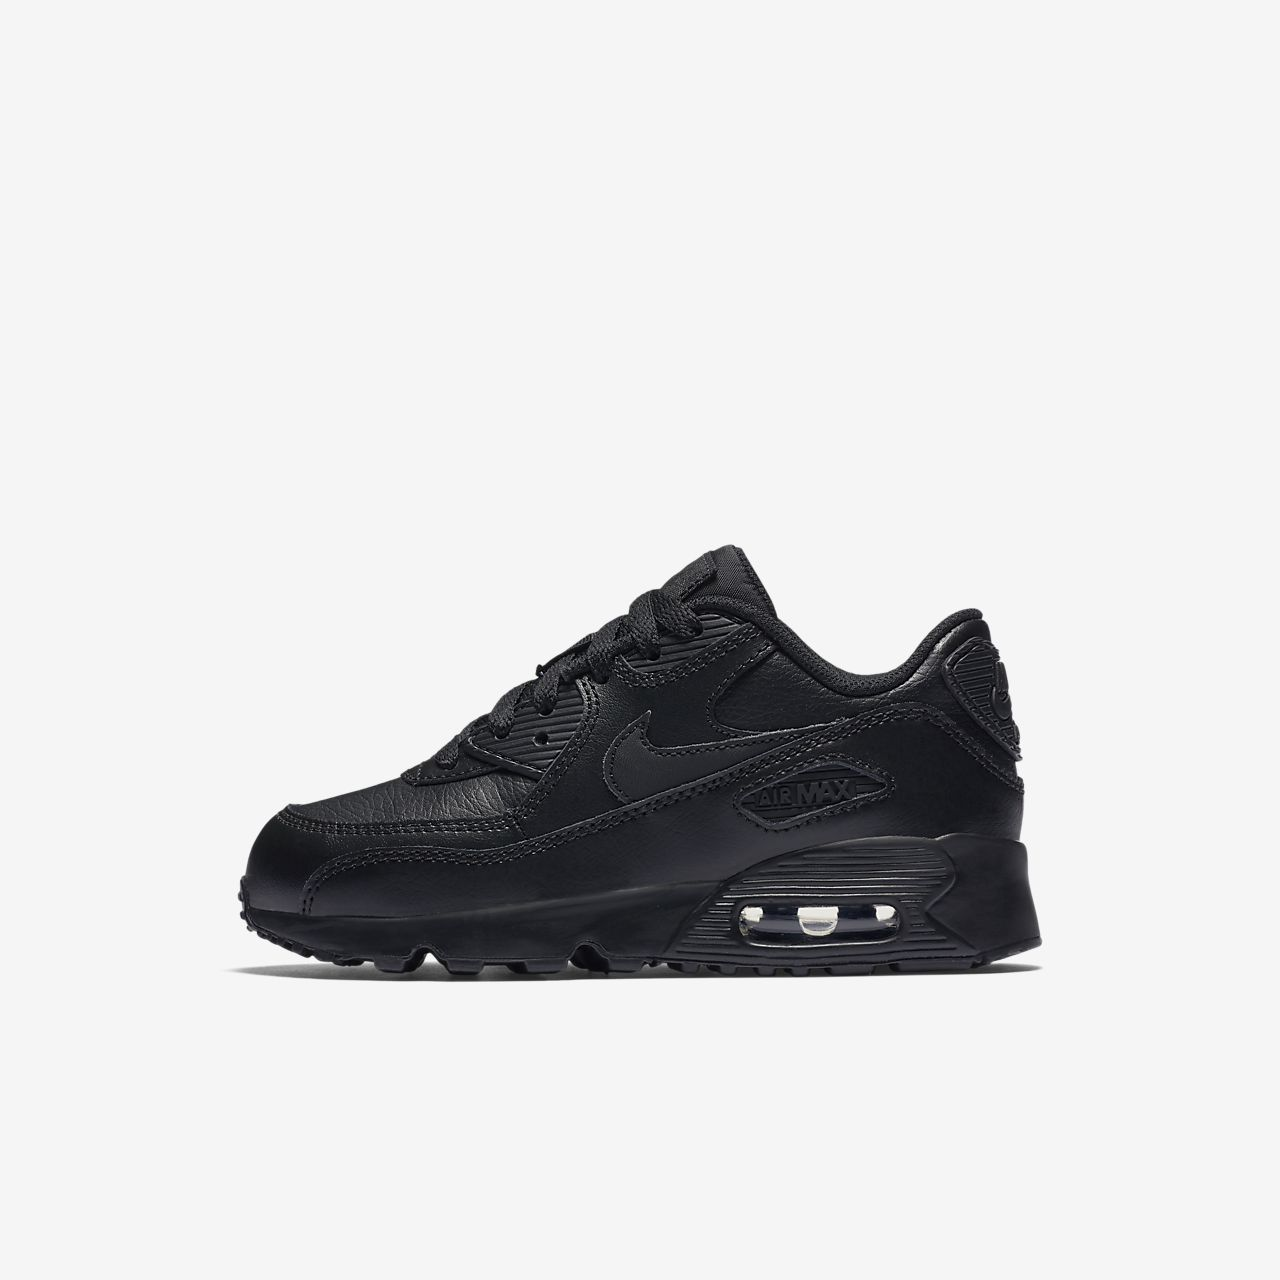 half off 990a3 0137e Younger Kids  Shoe. Nike Air Max 90 Leather